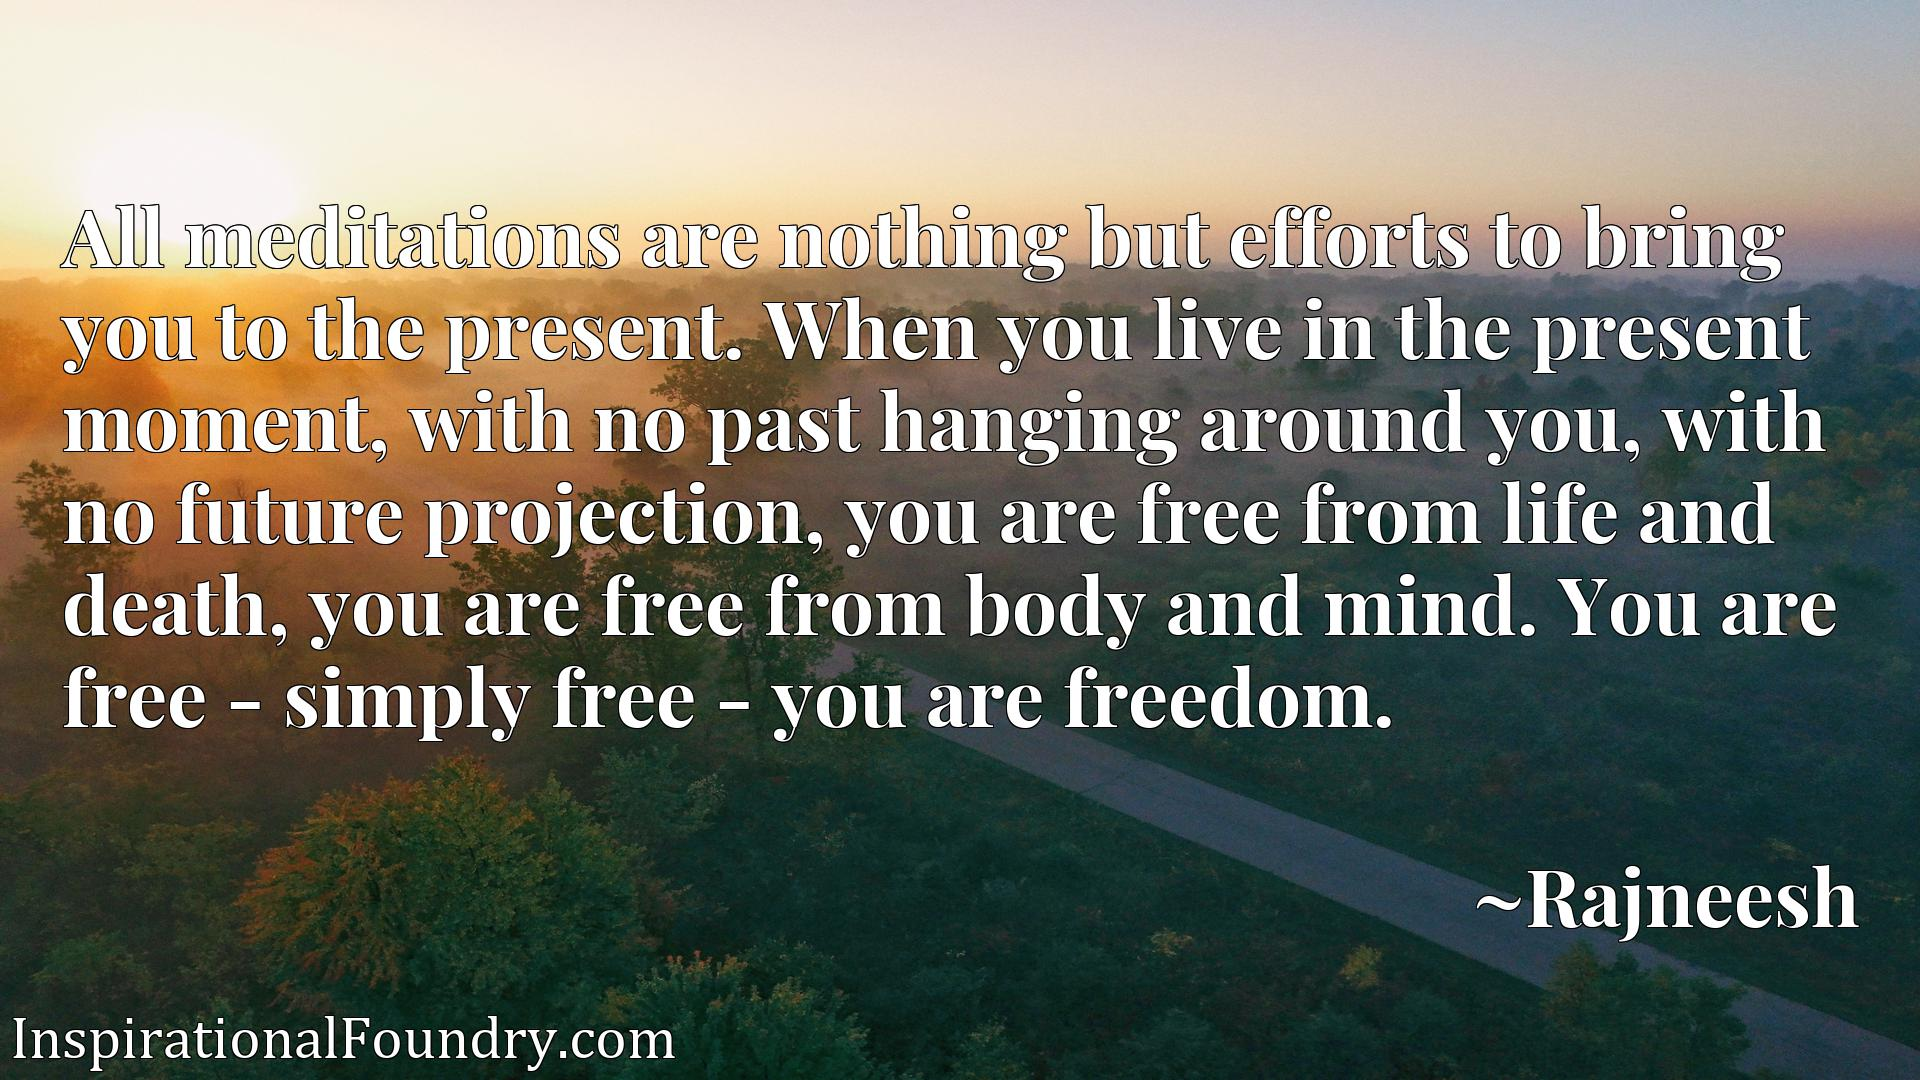 Quote Picture :All meditations are nothing but efforts to bring you to the present. When you live in the present moment, with no past hanging around you, with no future projection, you are free from life and death, you are free from body and mind. You are free - simply free - you are freedom.